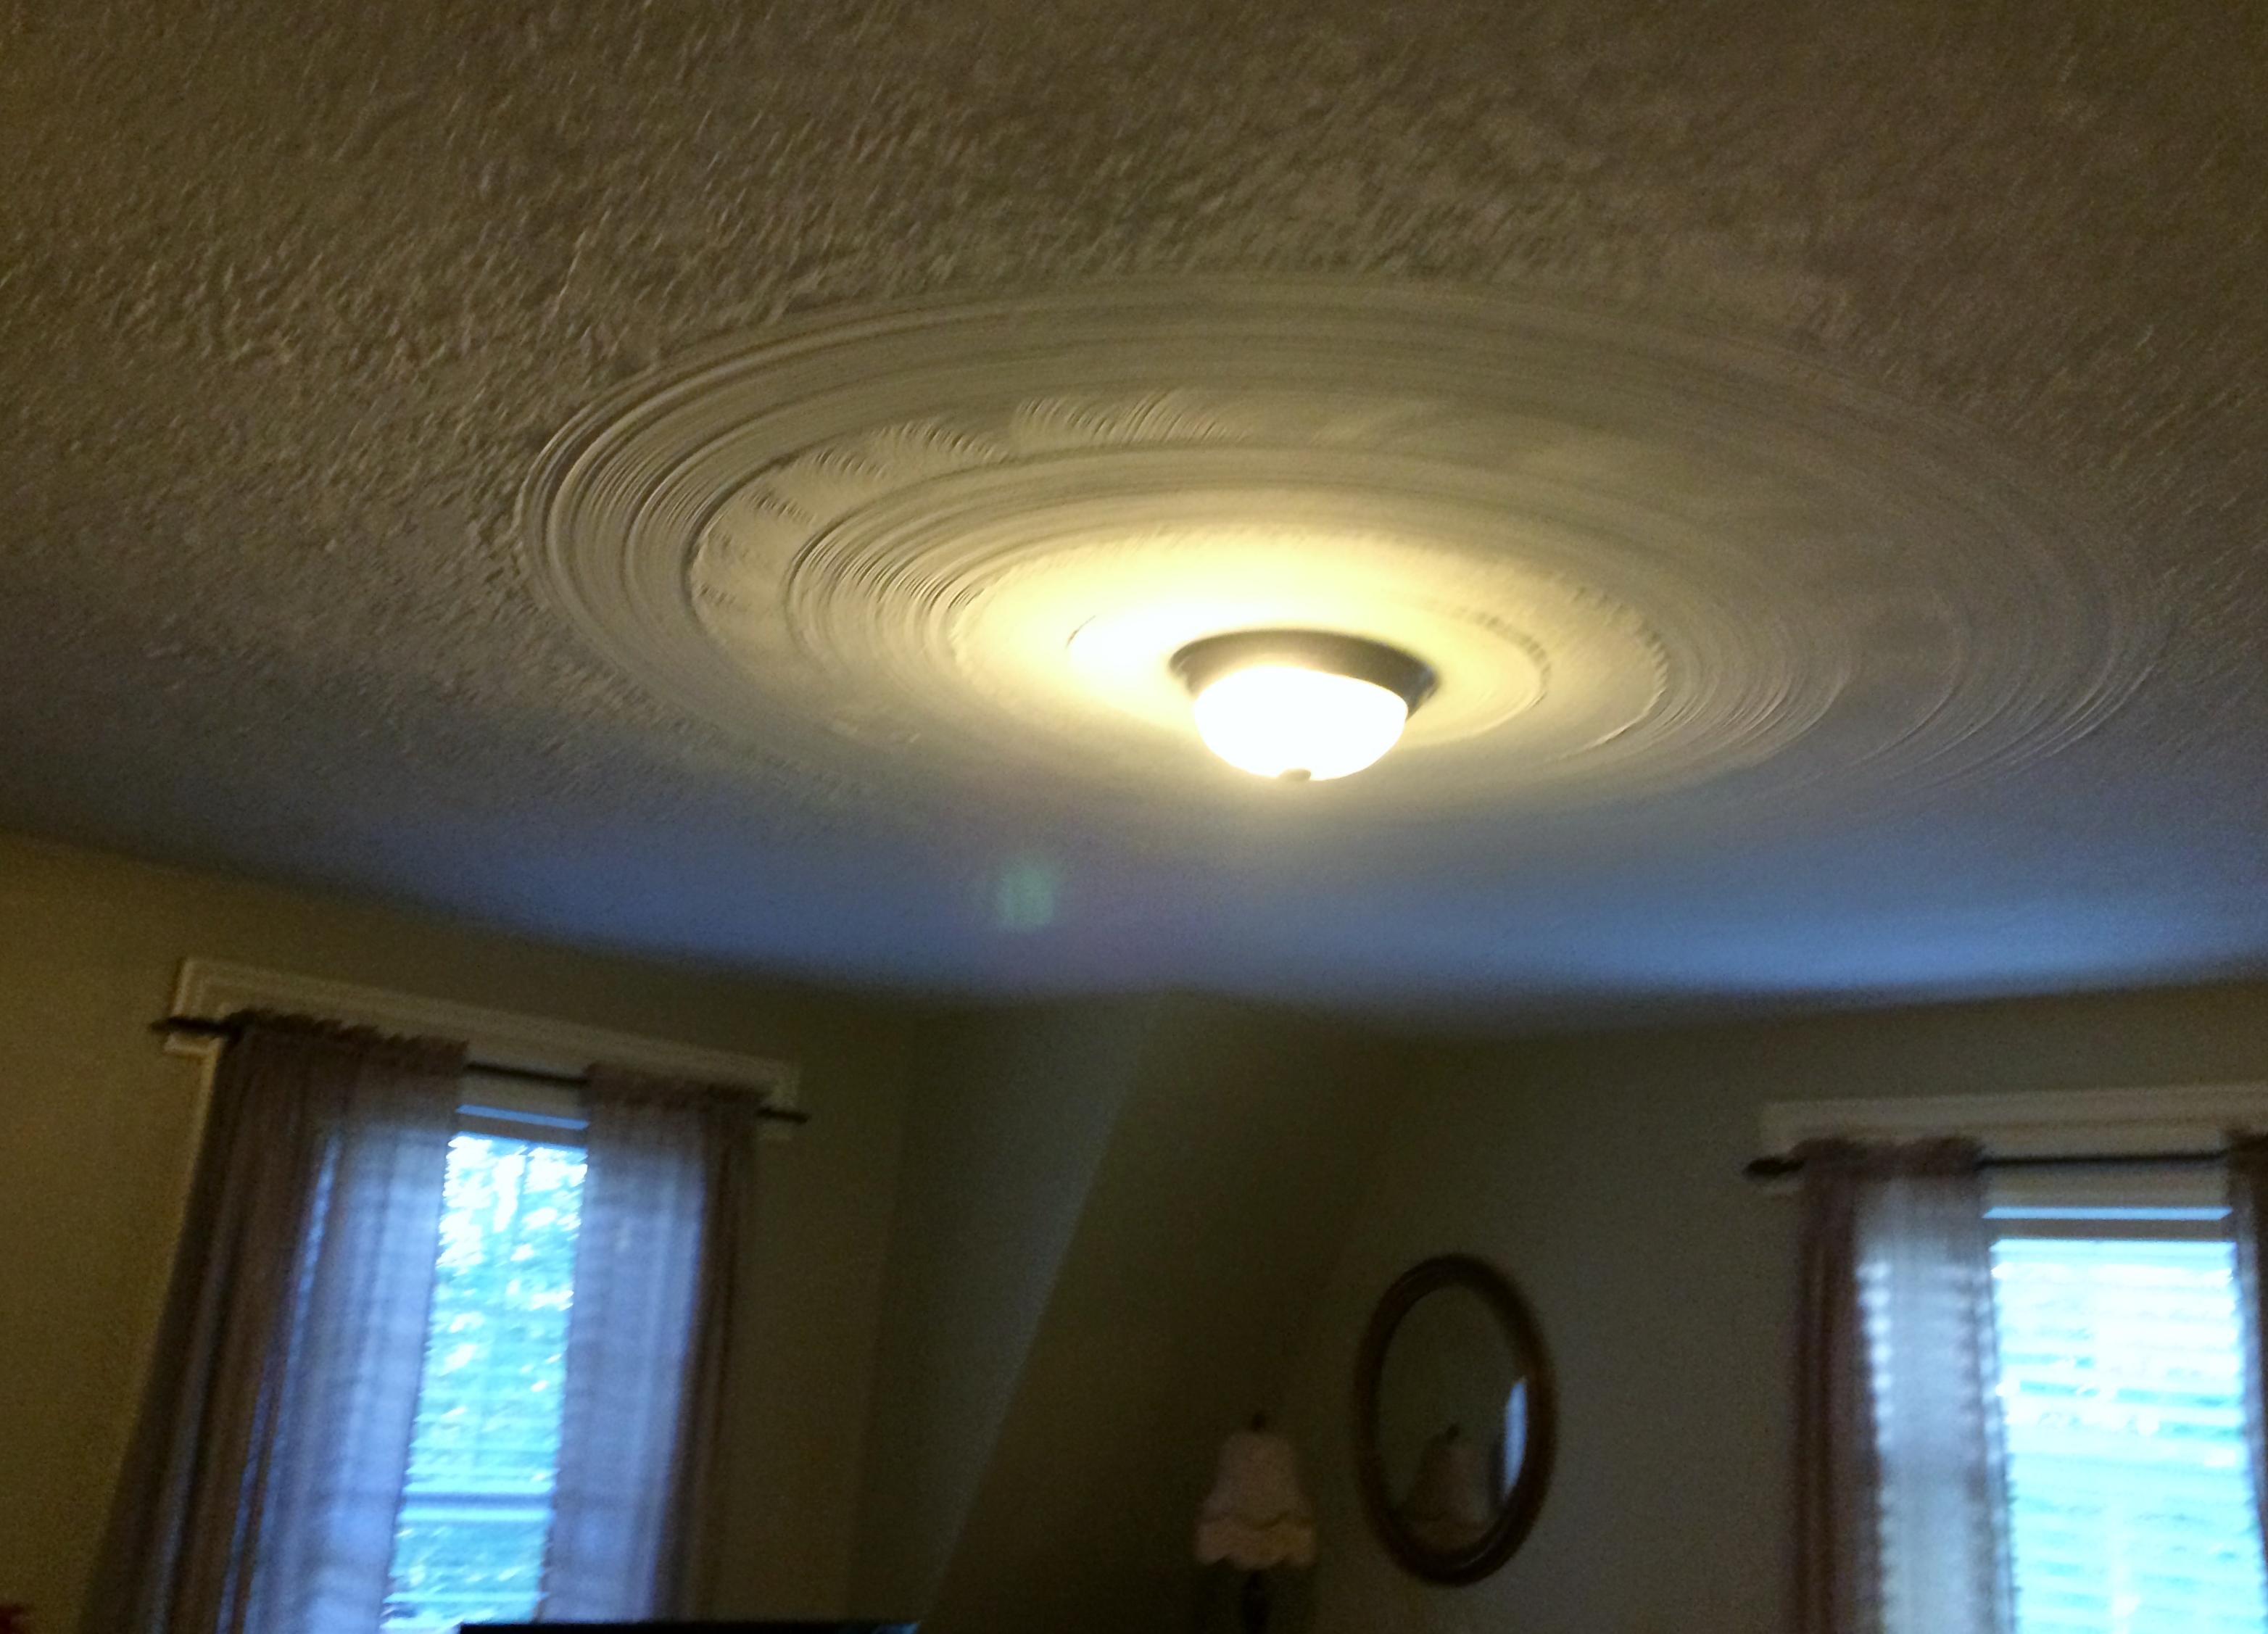 Heathwood Inn's decorative ceilings